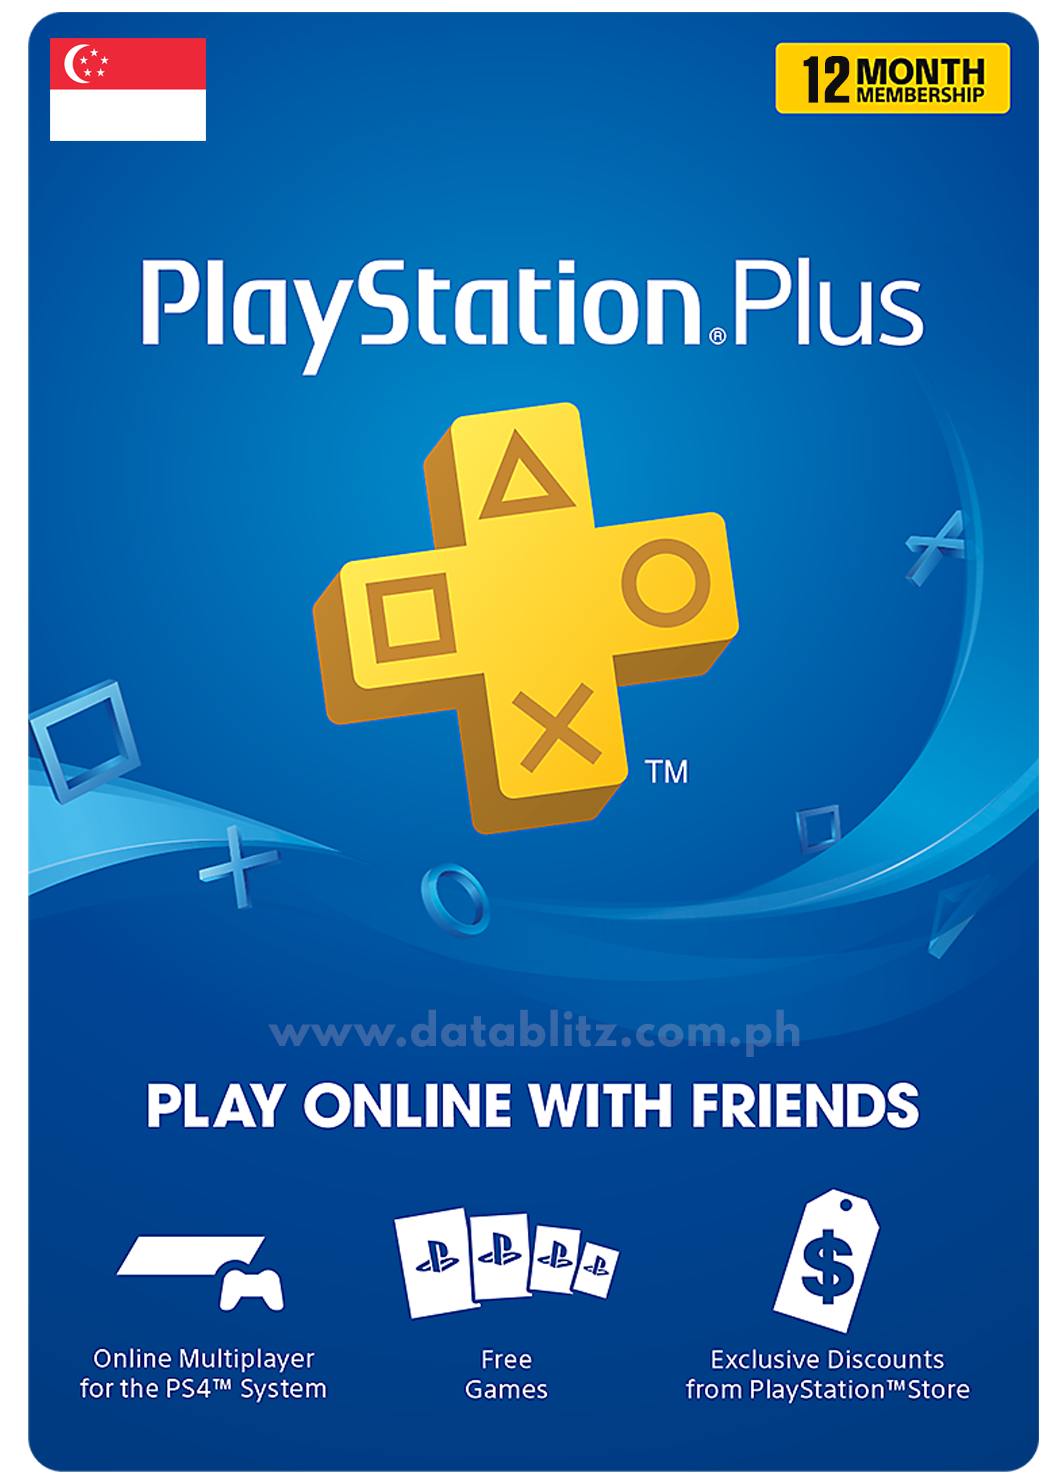 PLAYSTATION PLUS DIGITAL CODE 12 MONTHS - SG